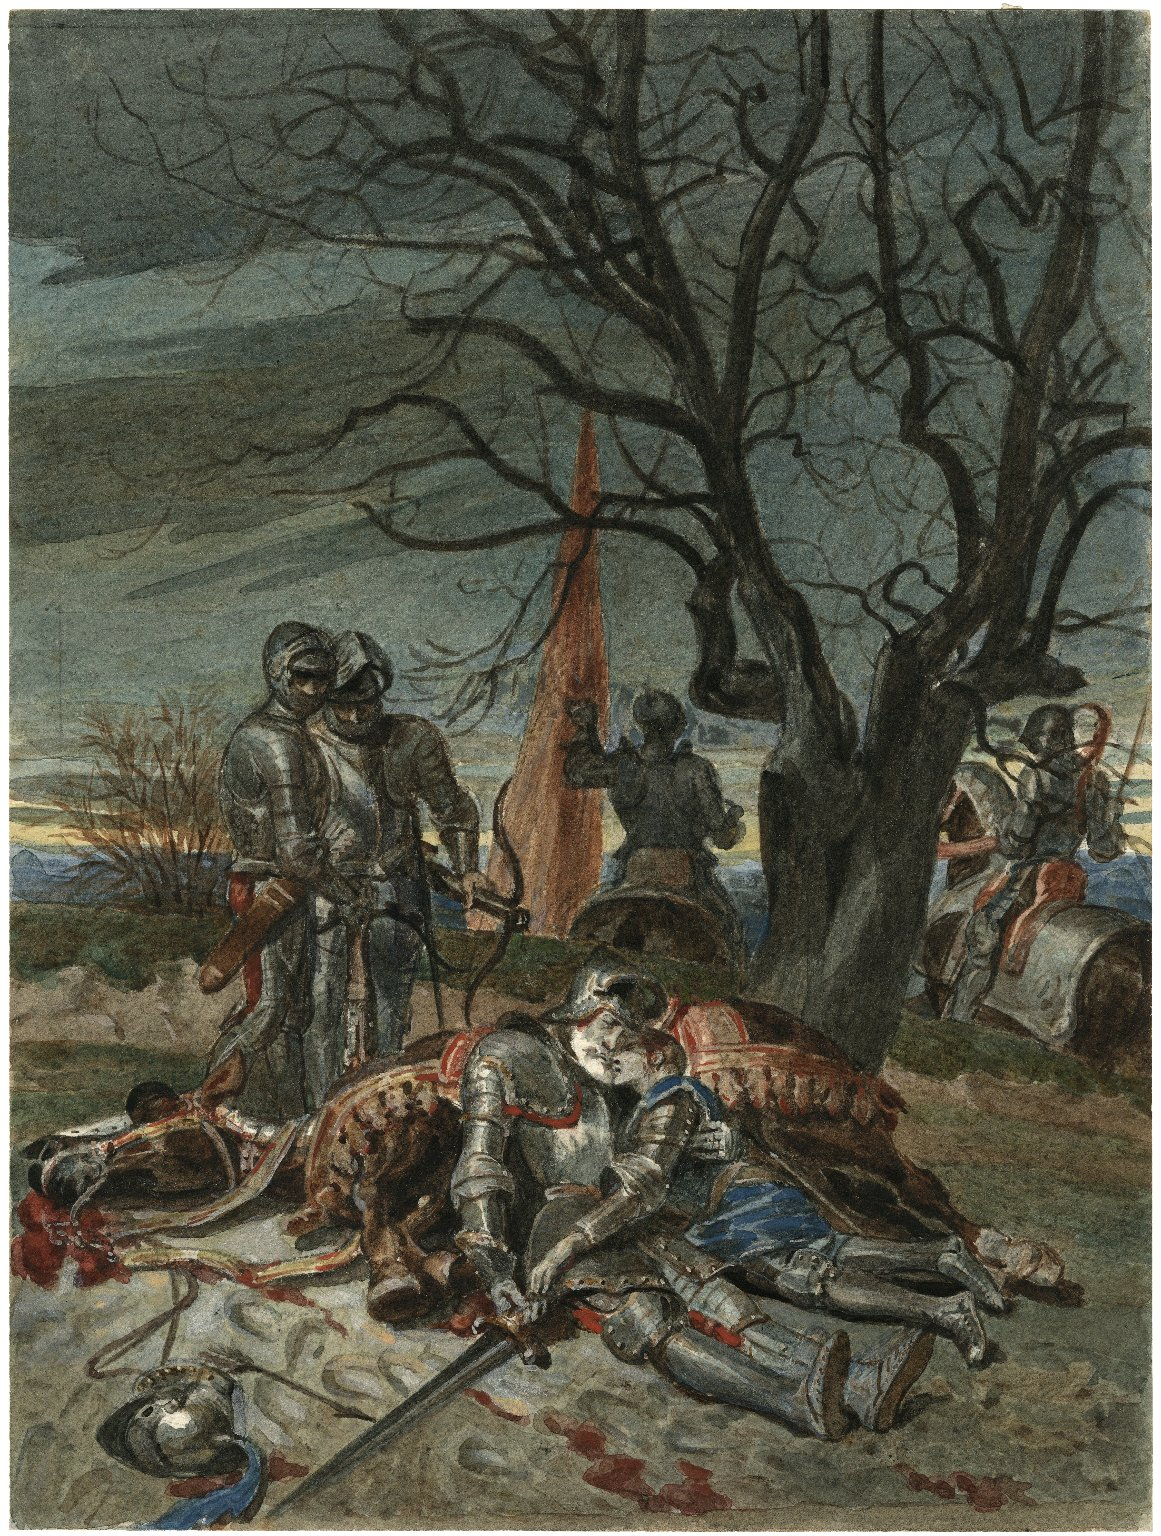 [Henry VI, Pt. 1, IV, 7, The death of Lord Talbot and his son, John] [graphic] / [Alexandre Bida].